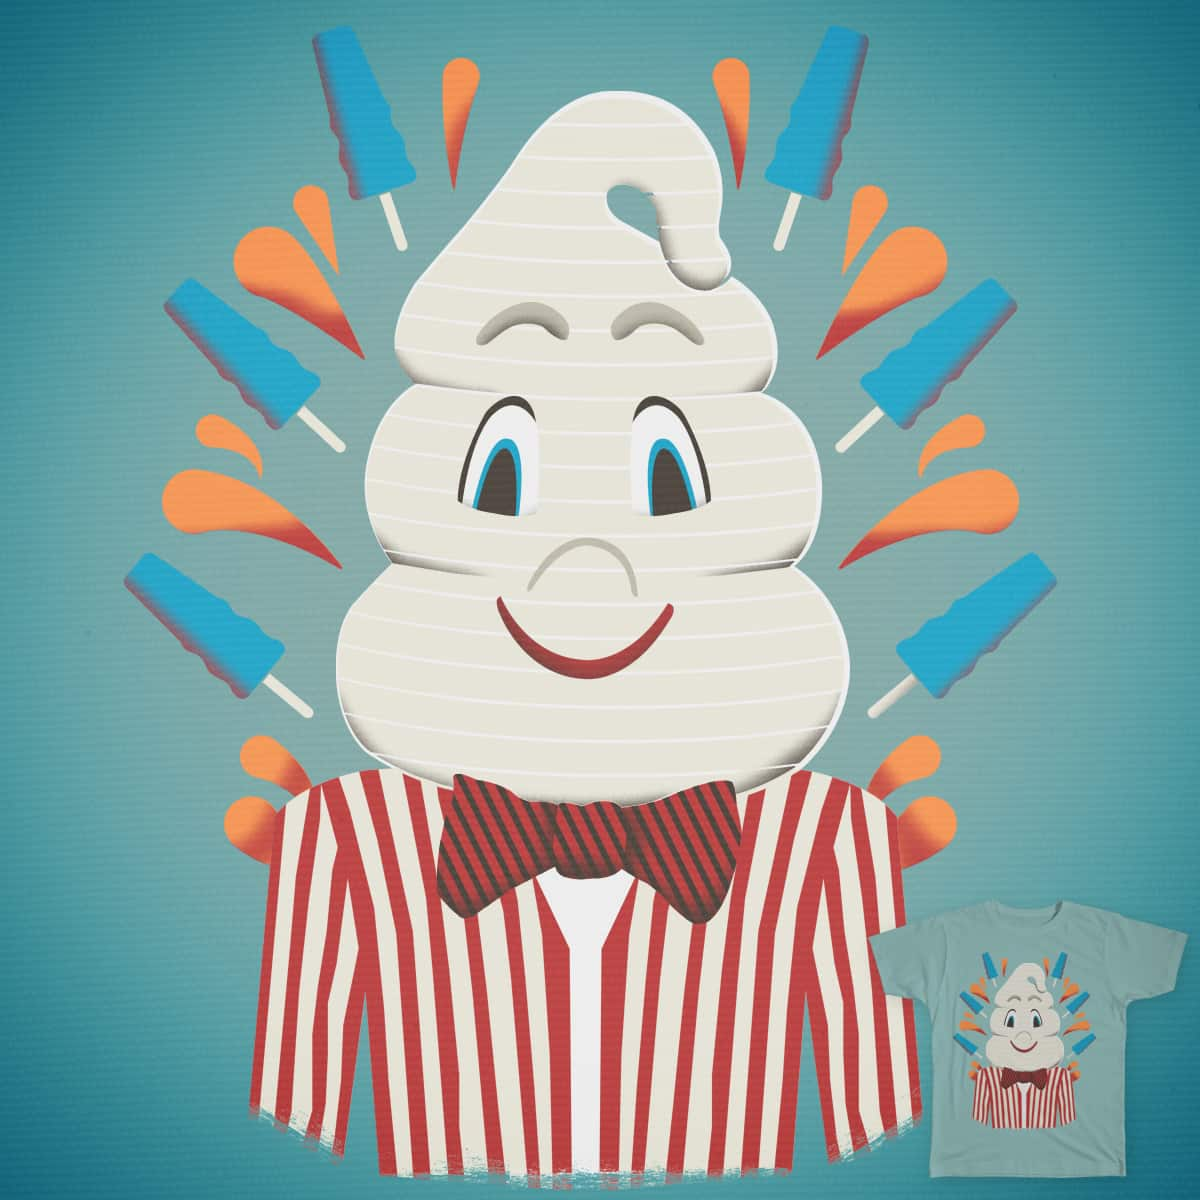 Tastee by Steger on Threadless